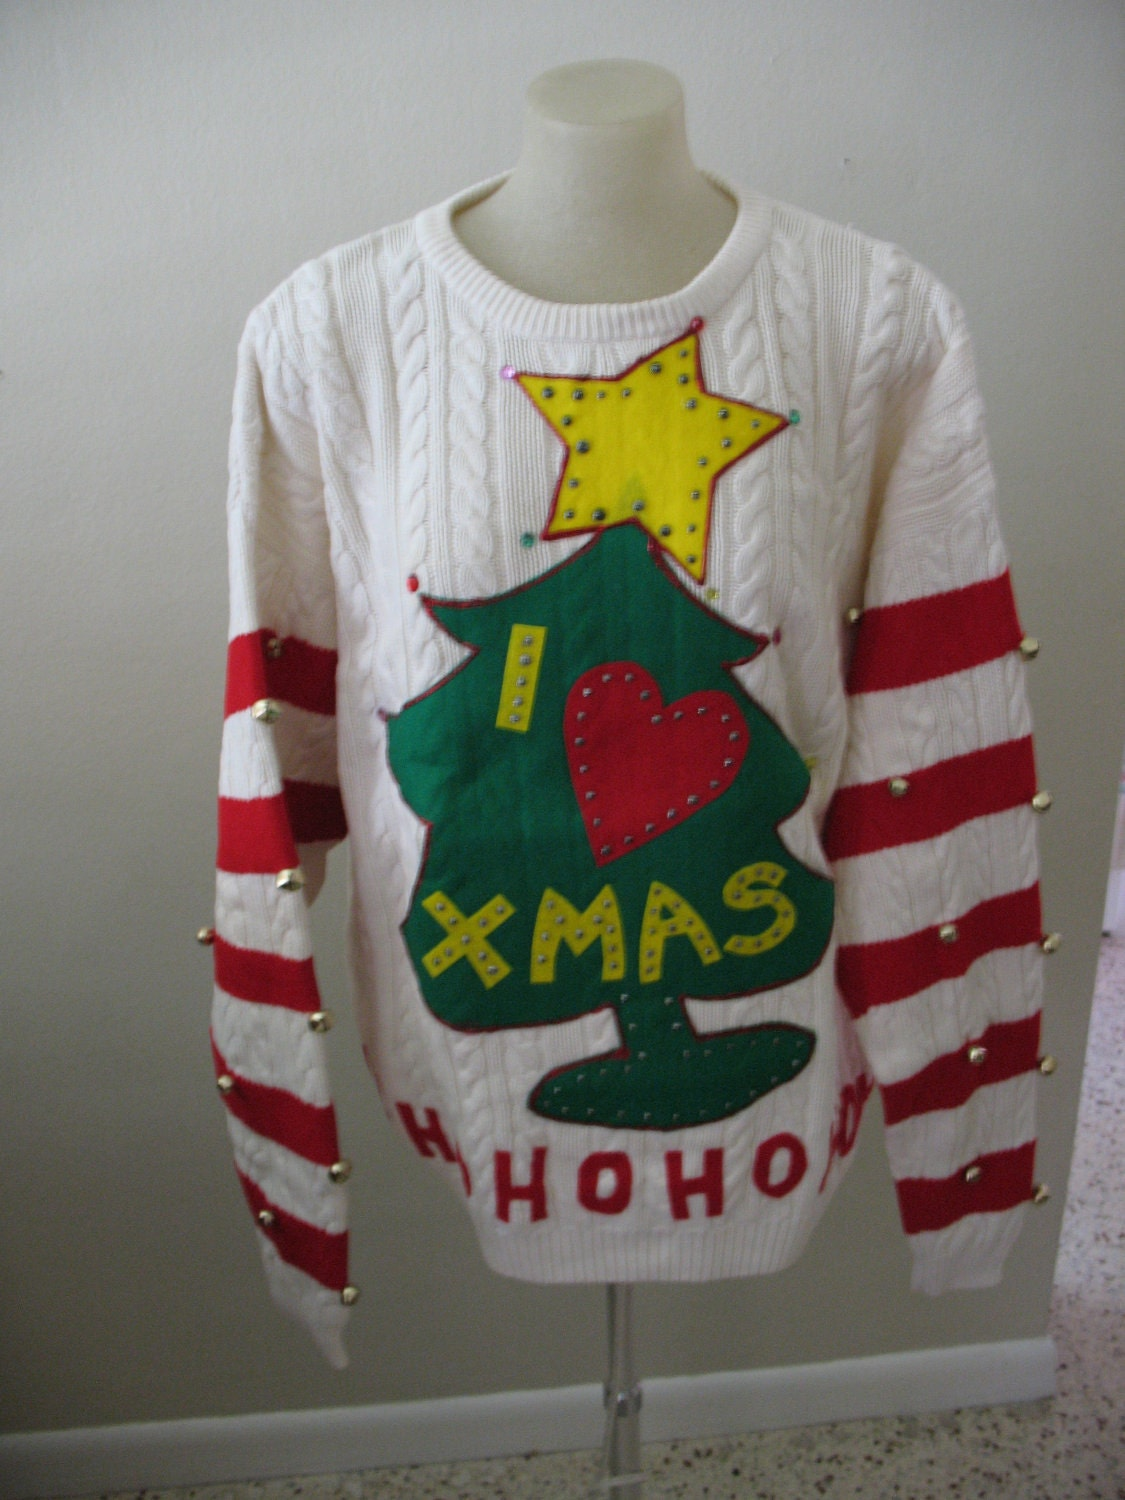 Grinch Christmas Sweater.Cheap Online Clothing Stores The Grinch Christmas Sweater